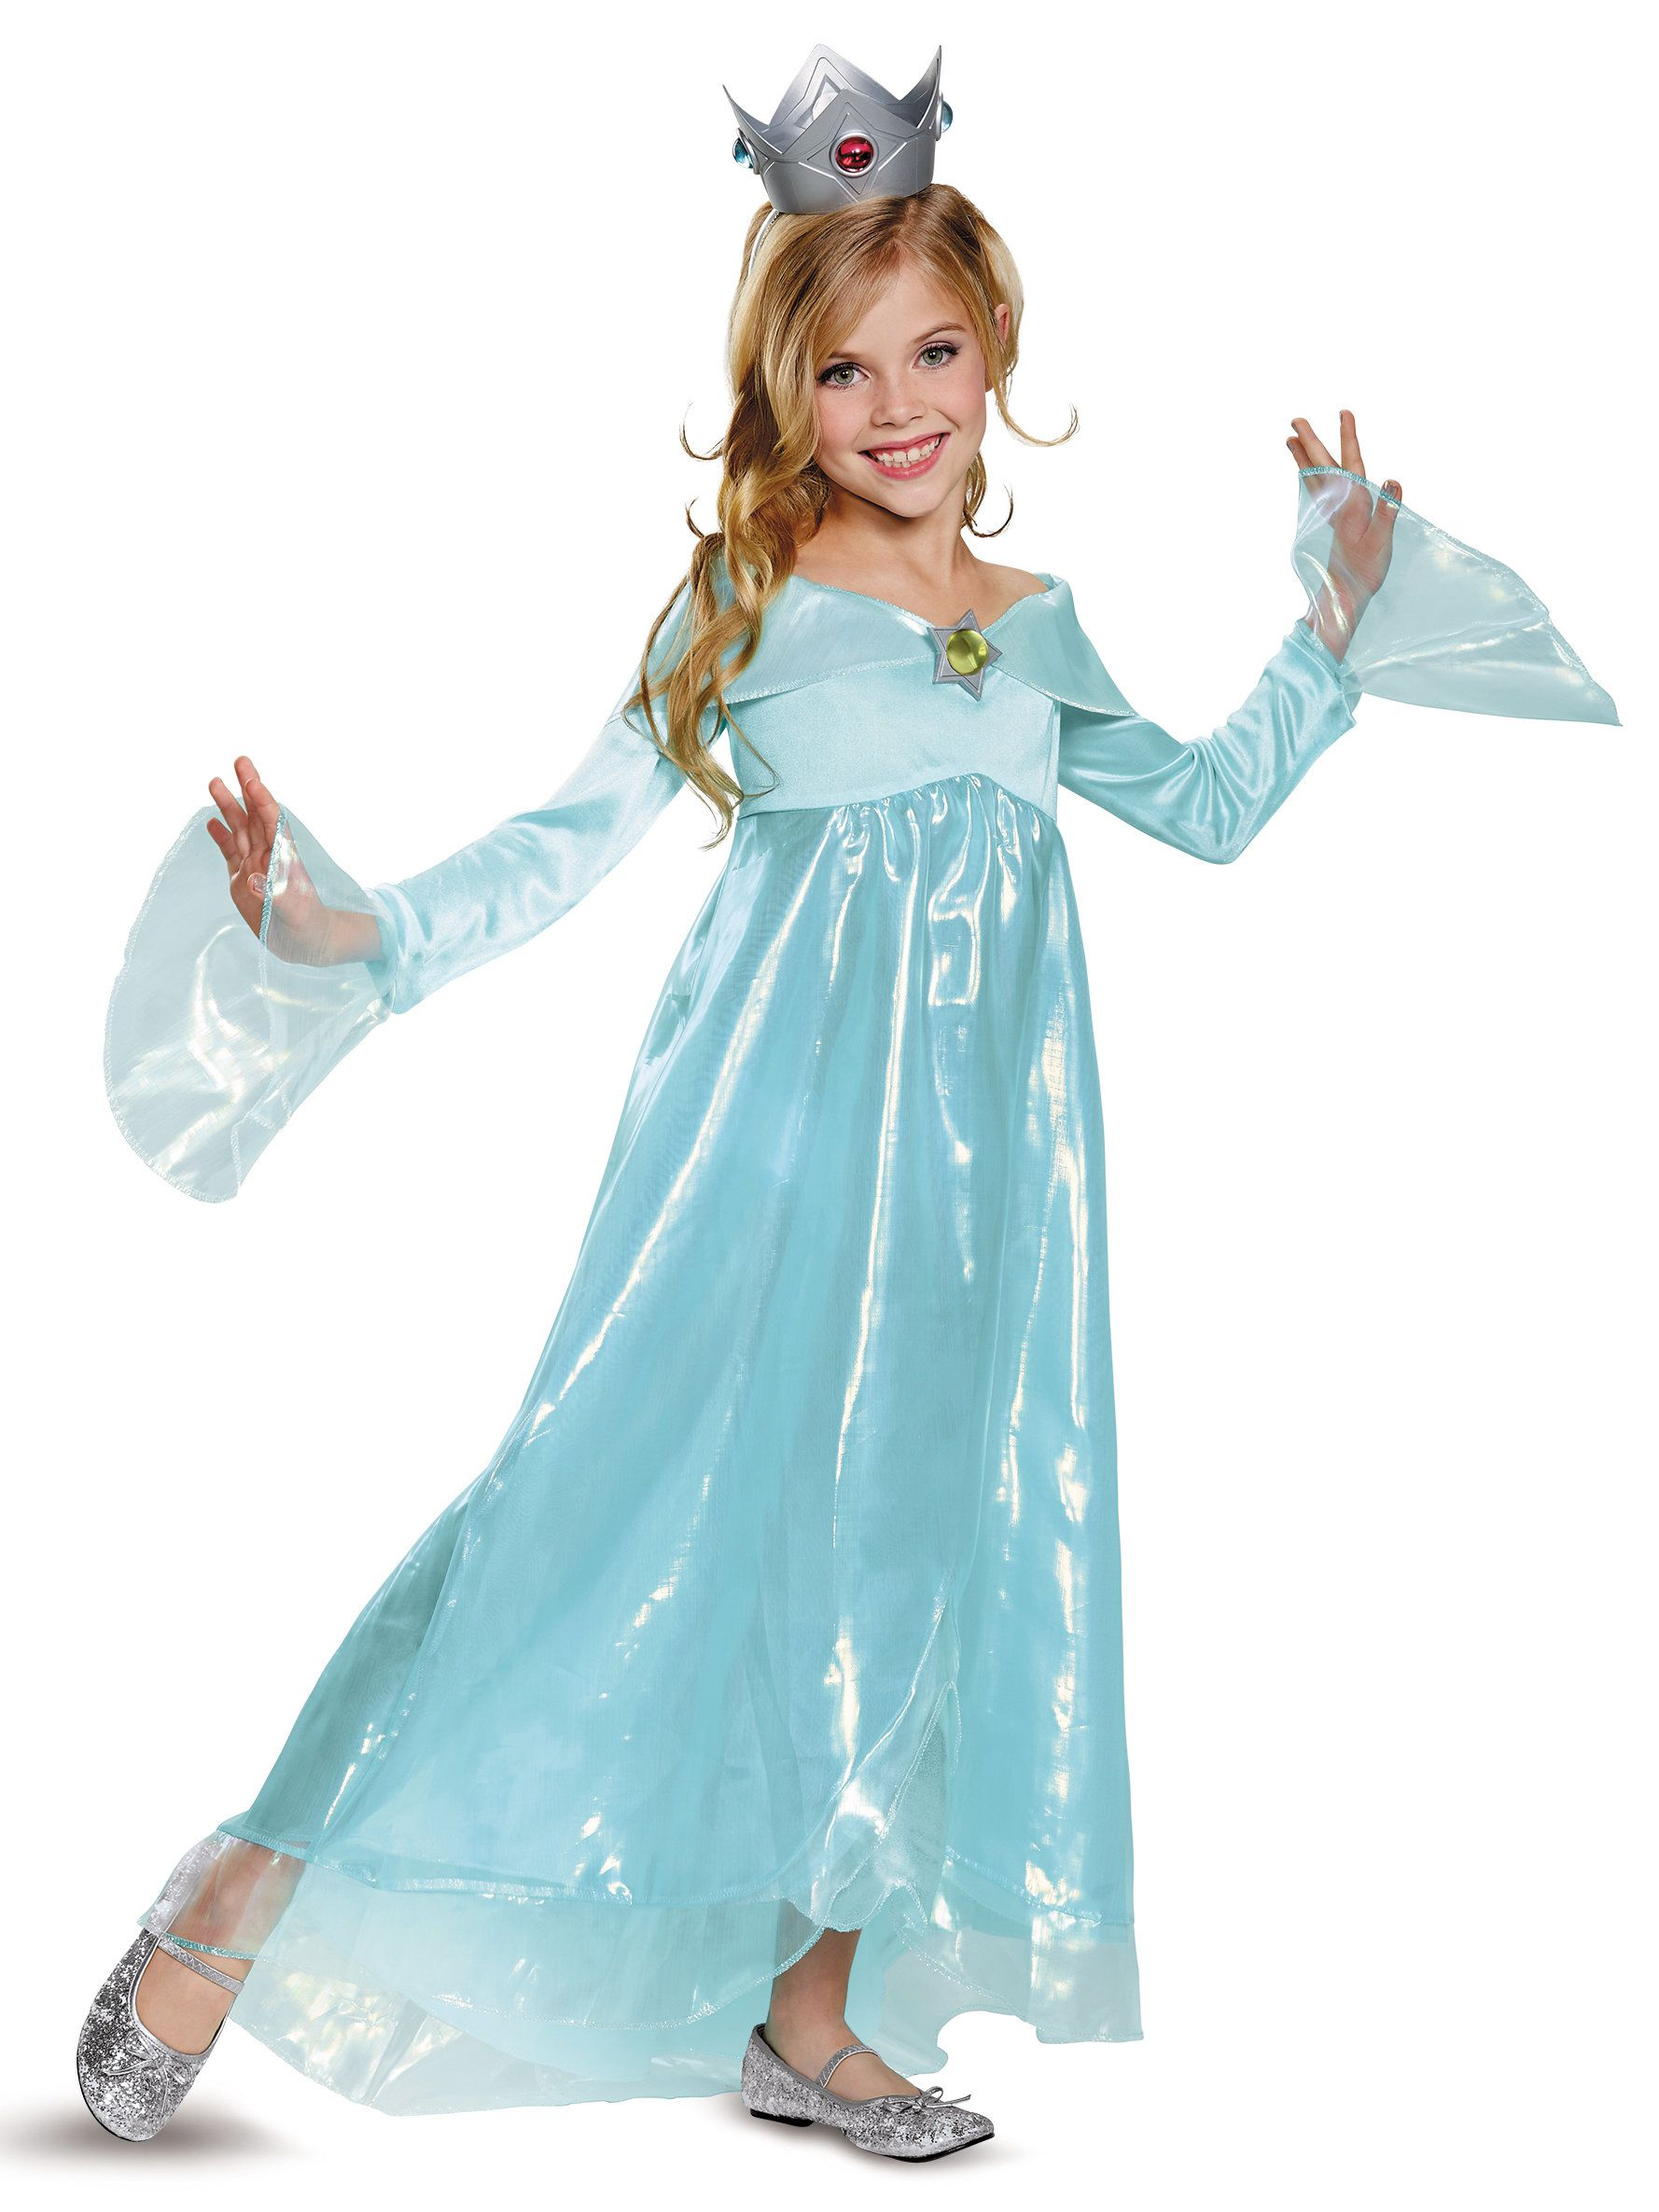 Super Mario Rosalina Deluxe Costume For Children  sc 1 st  Wholesale Halloween Costumes : kids super mario costume  - Germanpascual.Com